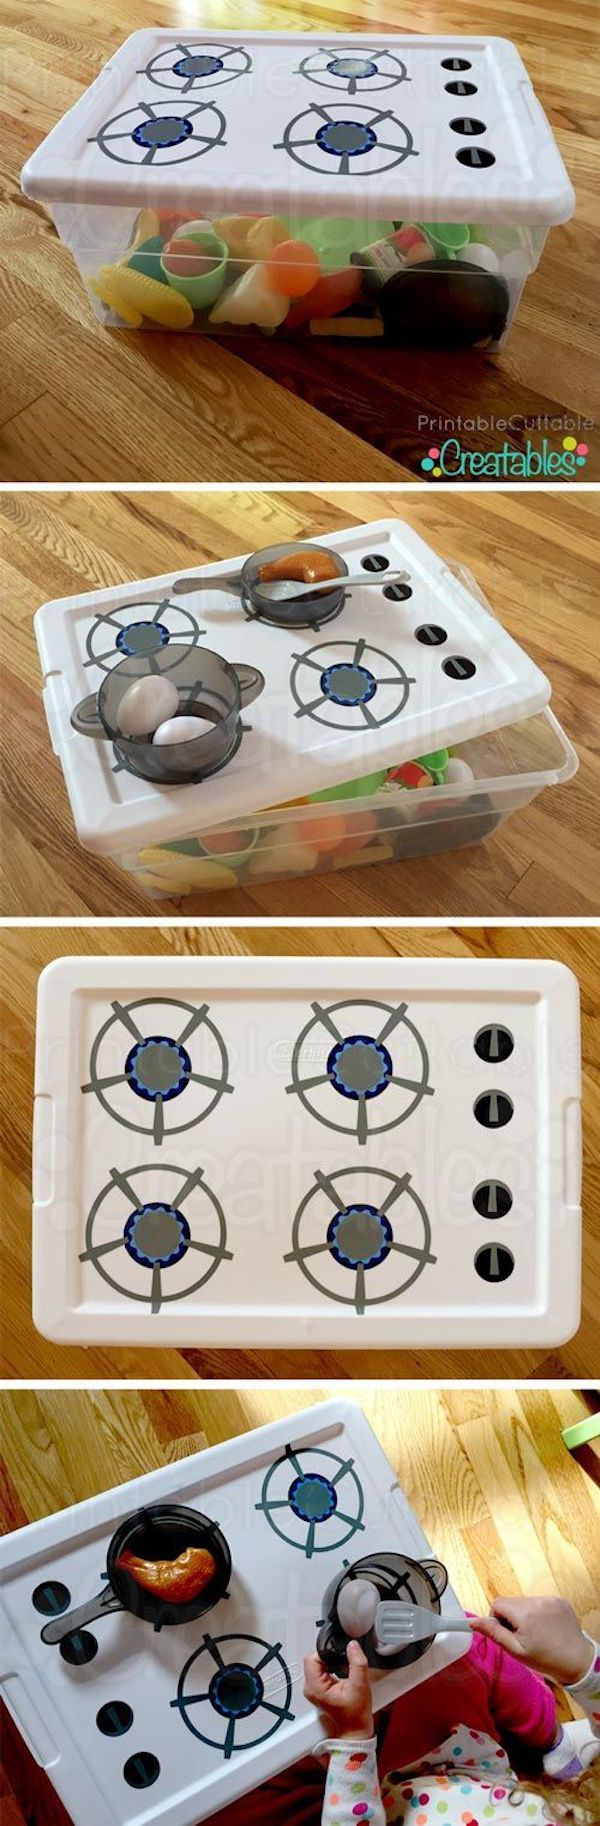 Imagem: http://printablecuttablecreatables.com/pack-n-go-kitchen-diy-toy-stove-tutorial-free-svg-cut-files/